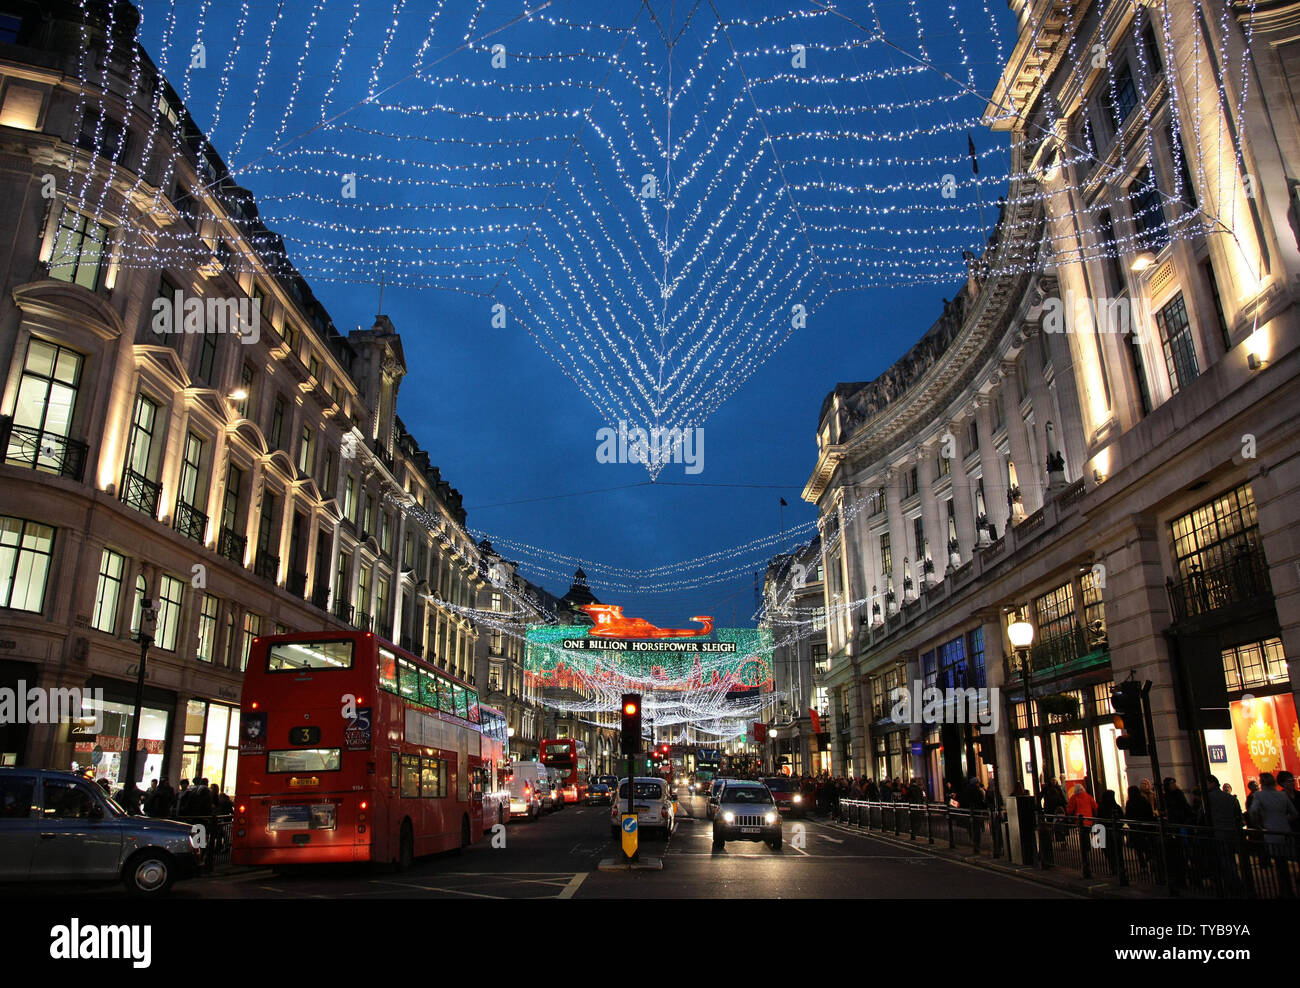 The Regent Street lights sparkle as Christmas shoppers look for bargains on Oxford St,London's busiest shopping district on Tuesday December 20 2011.Retailers face another tough trading cycle as shoppers hold off making their purchases until the sales begin.    UPI/Hugo Philpott - Stock Image